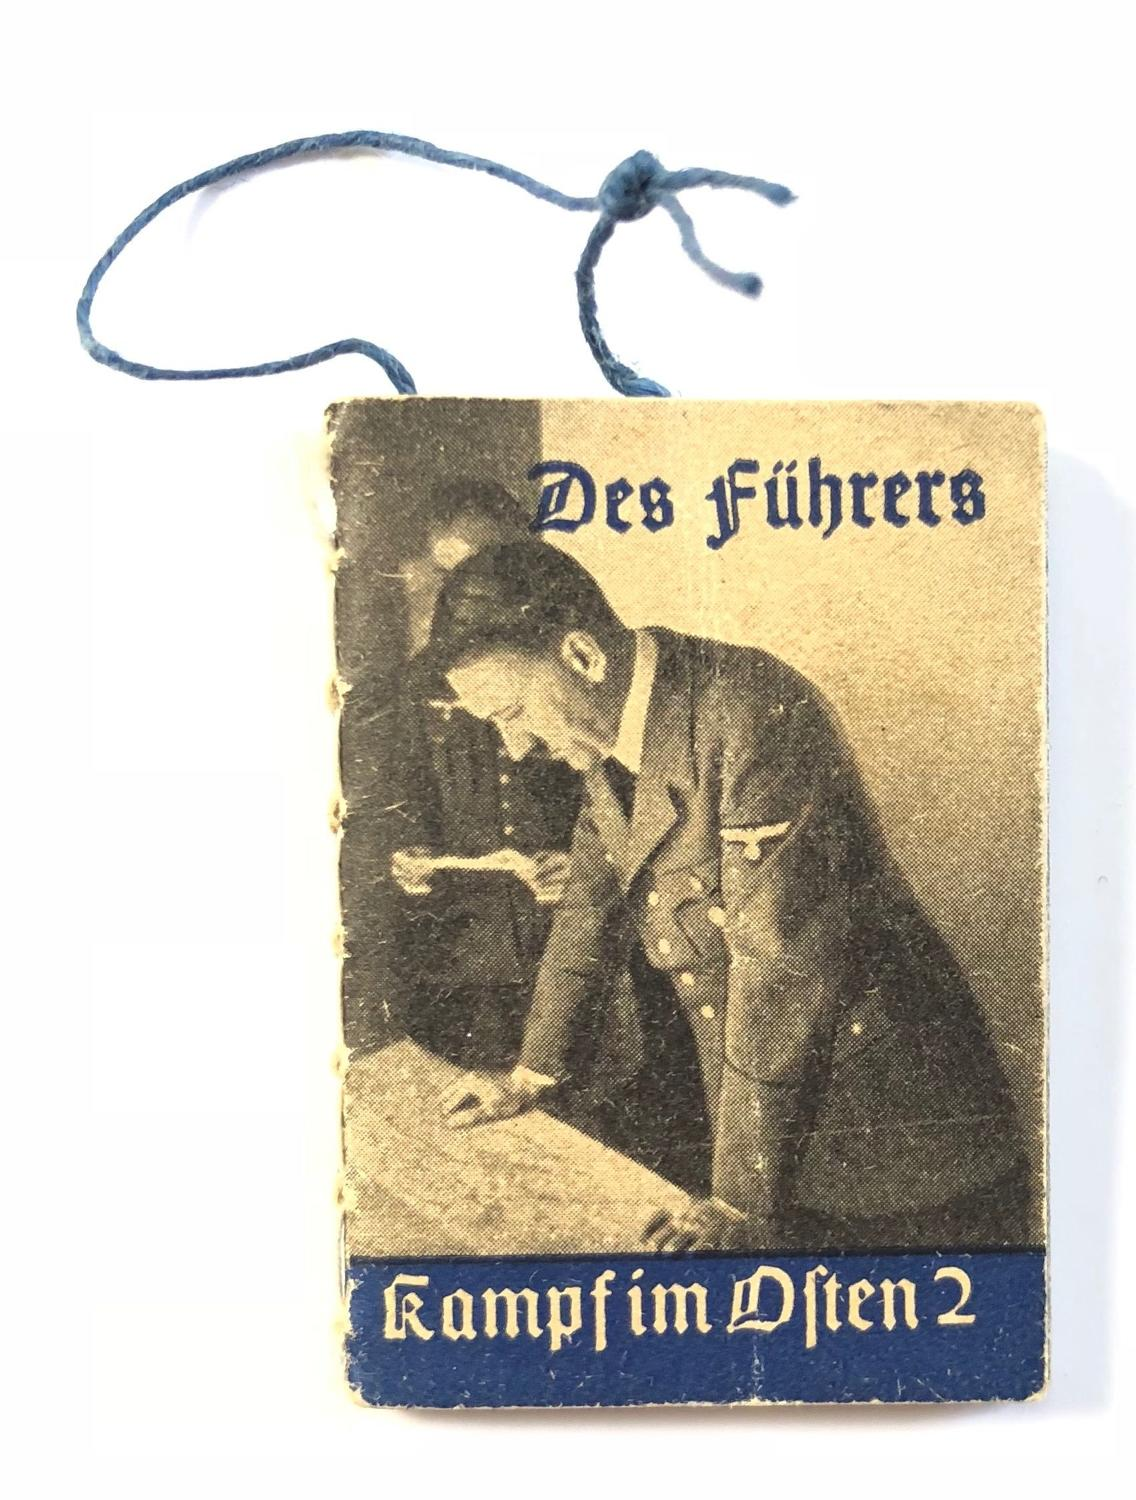 WW2 Nazi German Fundraising Adolf Hitler Booklet.